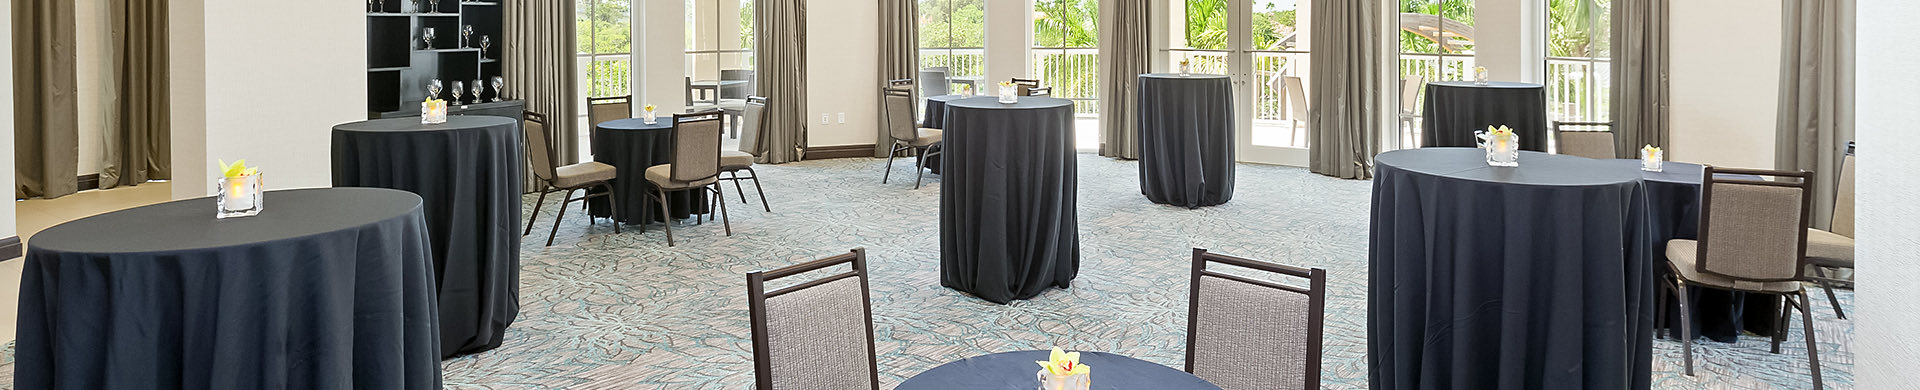 event space with small tall round tables